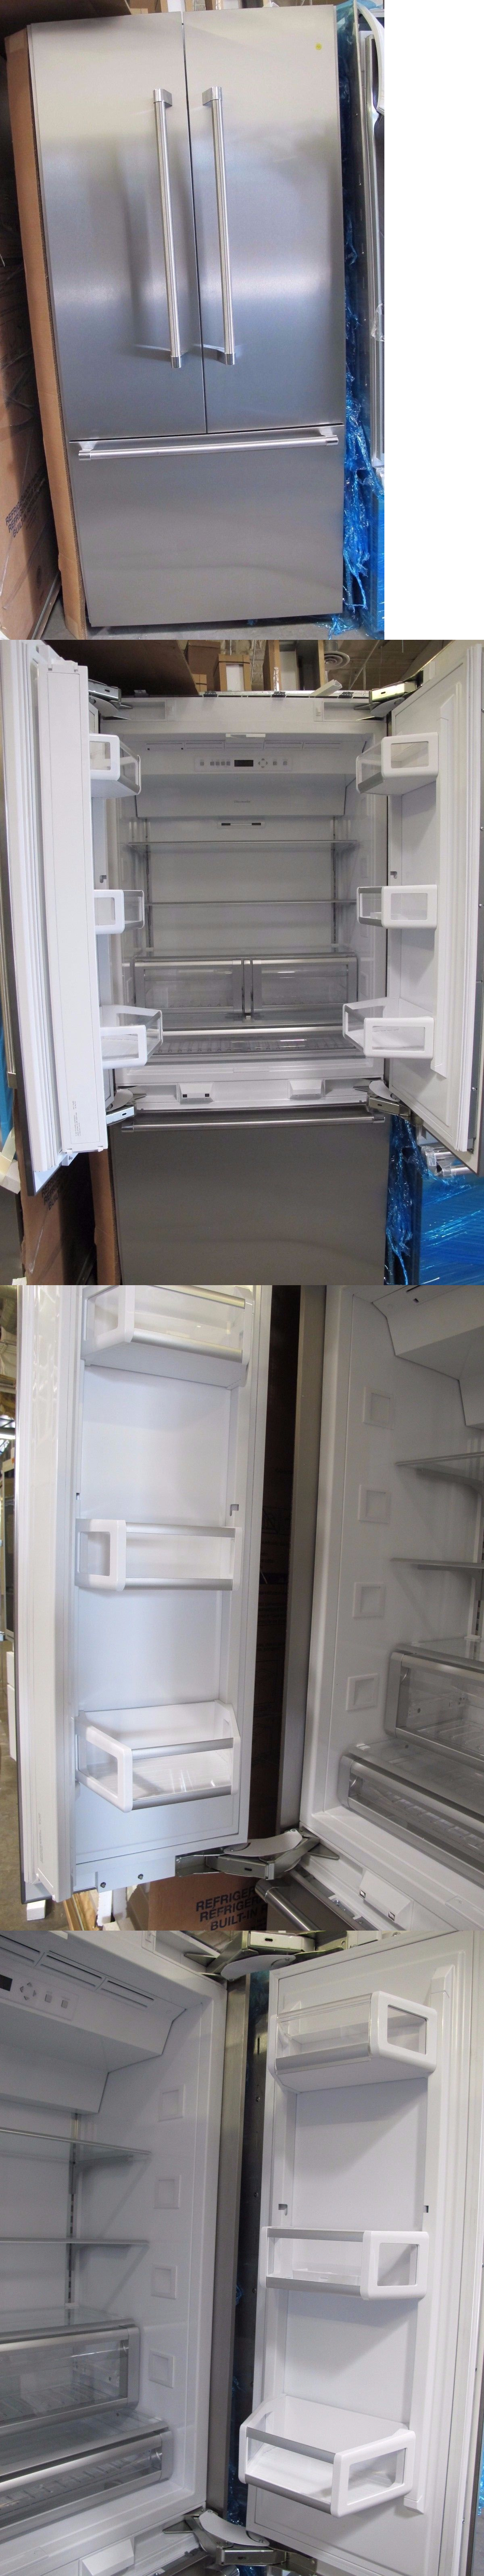 36 Refrigerators Refrigerators 20713 Thermador 36 T36bt820ns Built In French Door